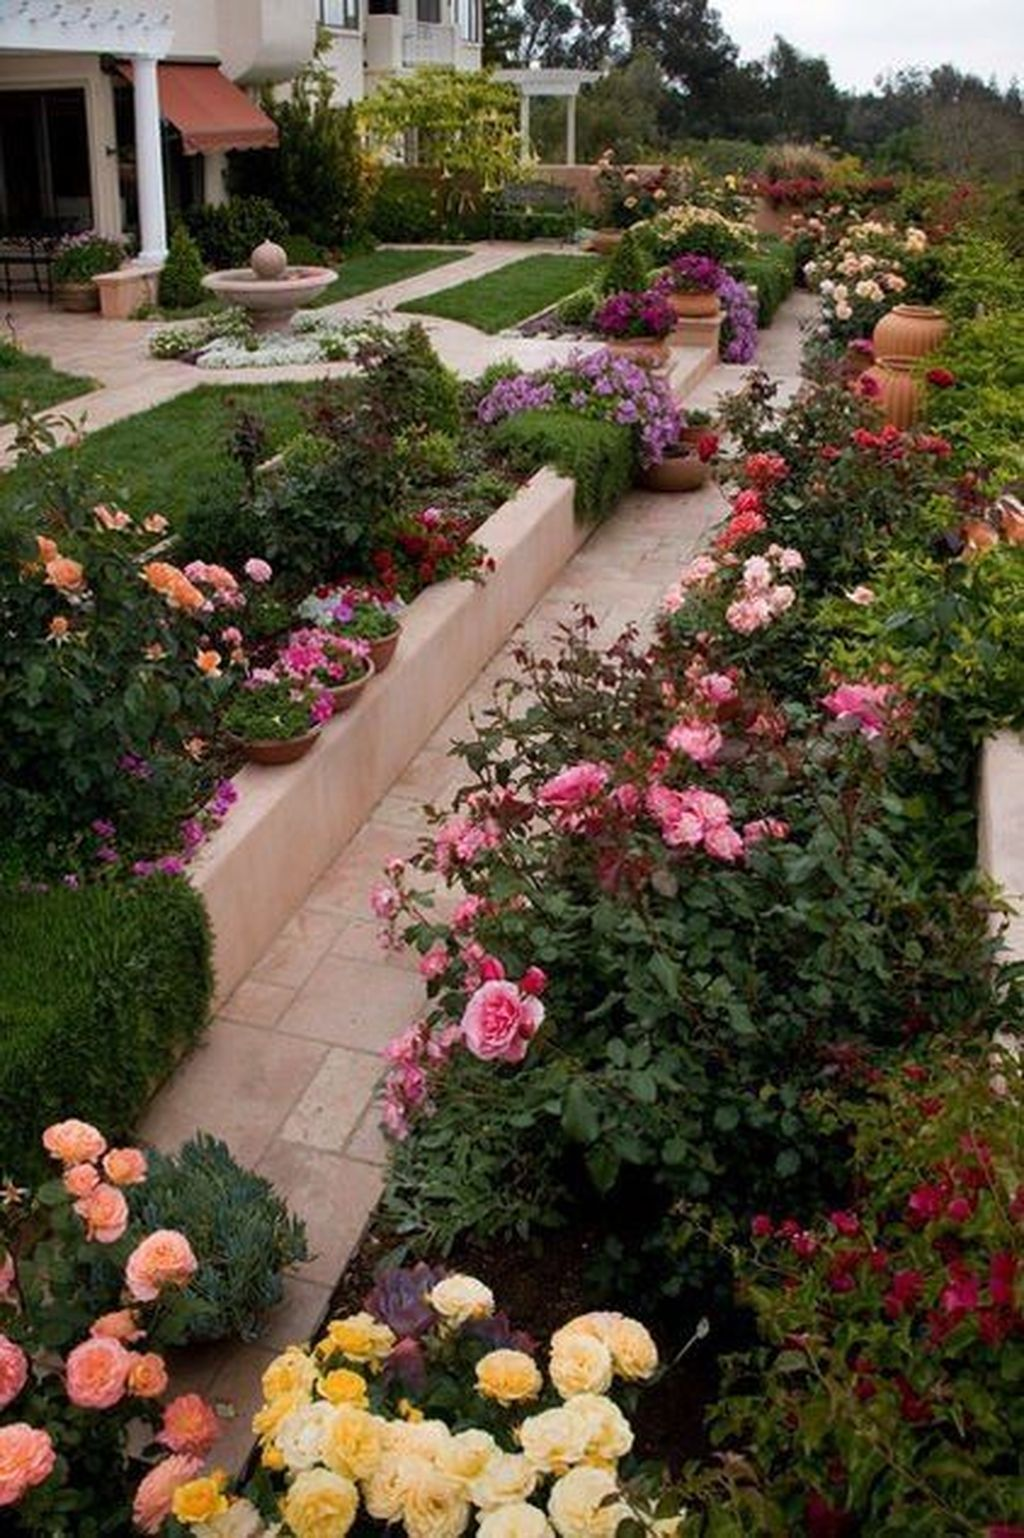 40 Garden Design Ideas In Your Home That Add To The Beauty Of